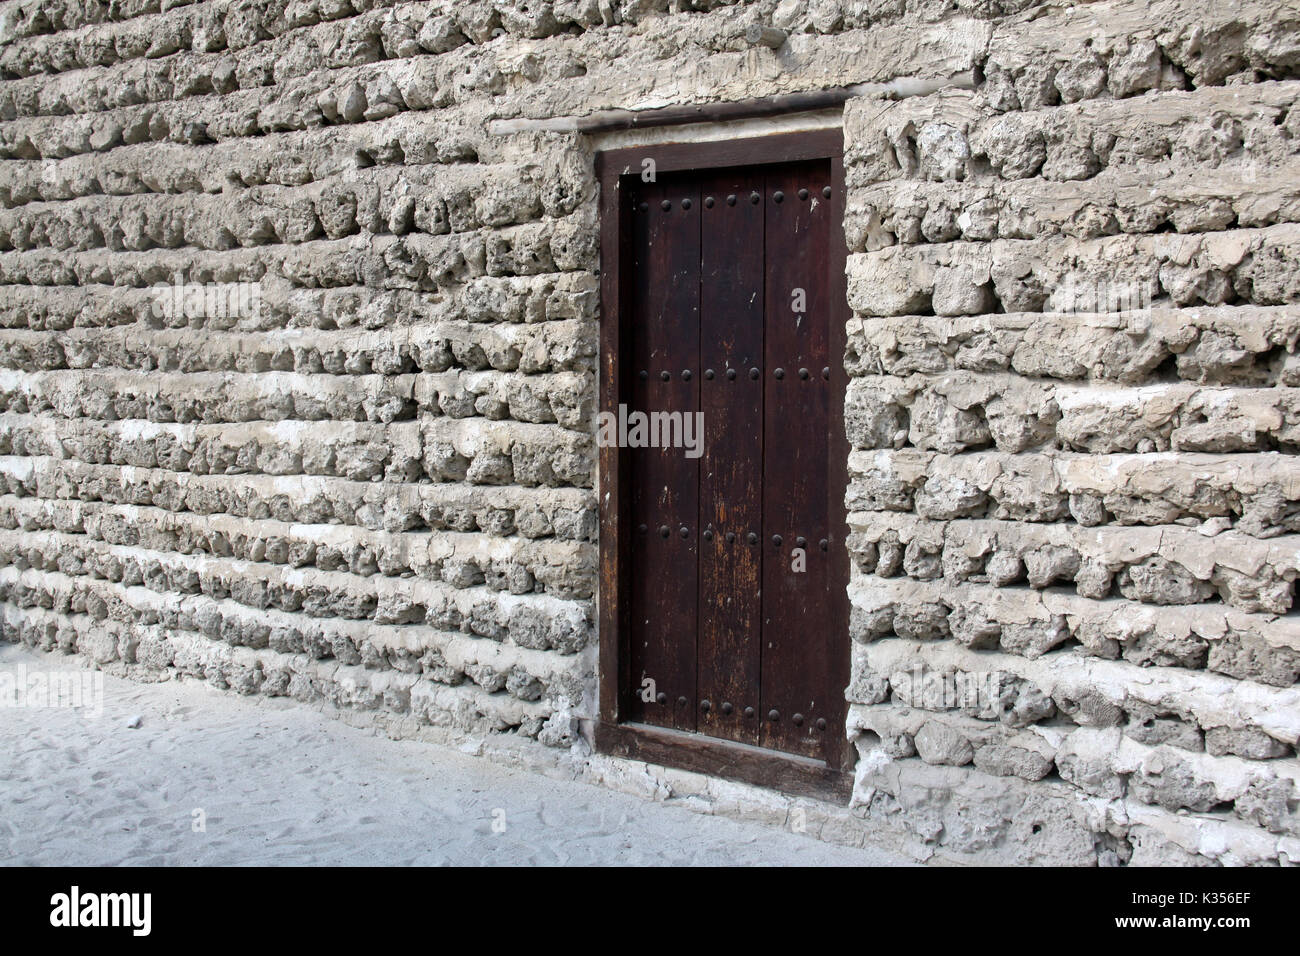 The traditional door at the entrance of an ancient Arabian fort. - Stock Image